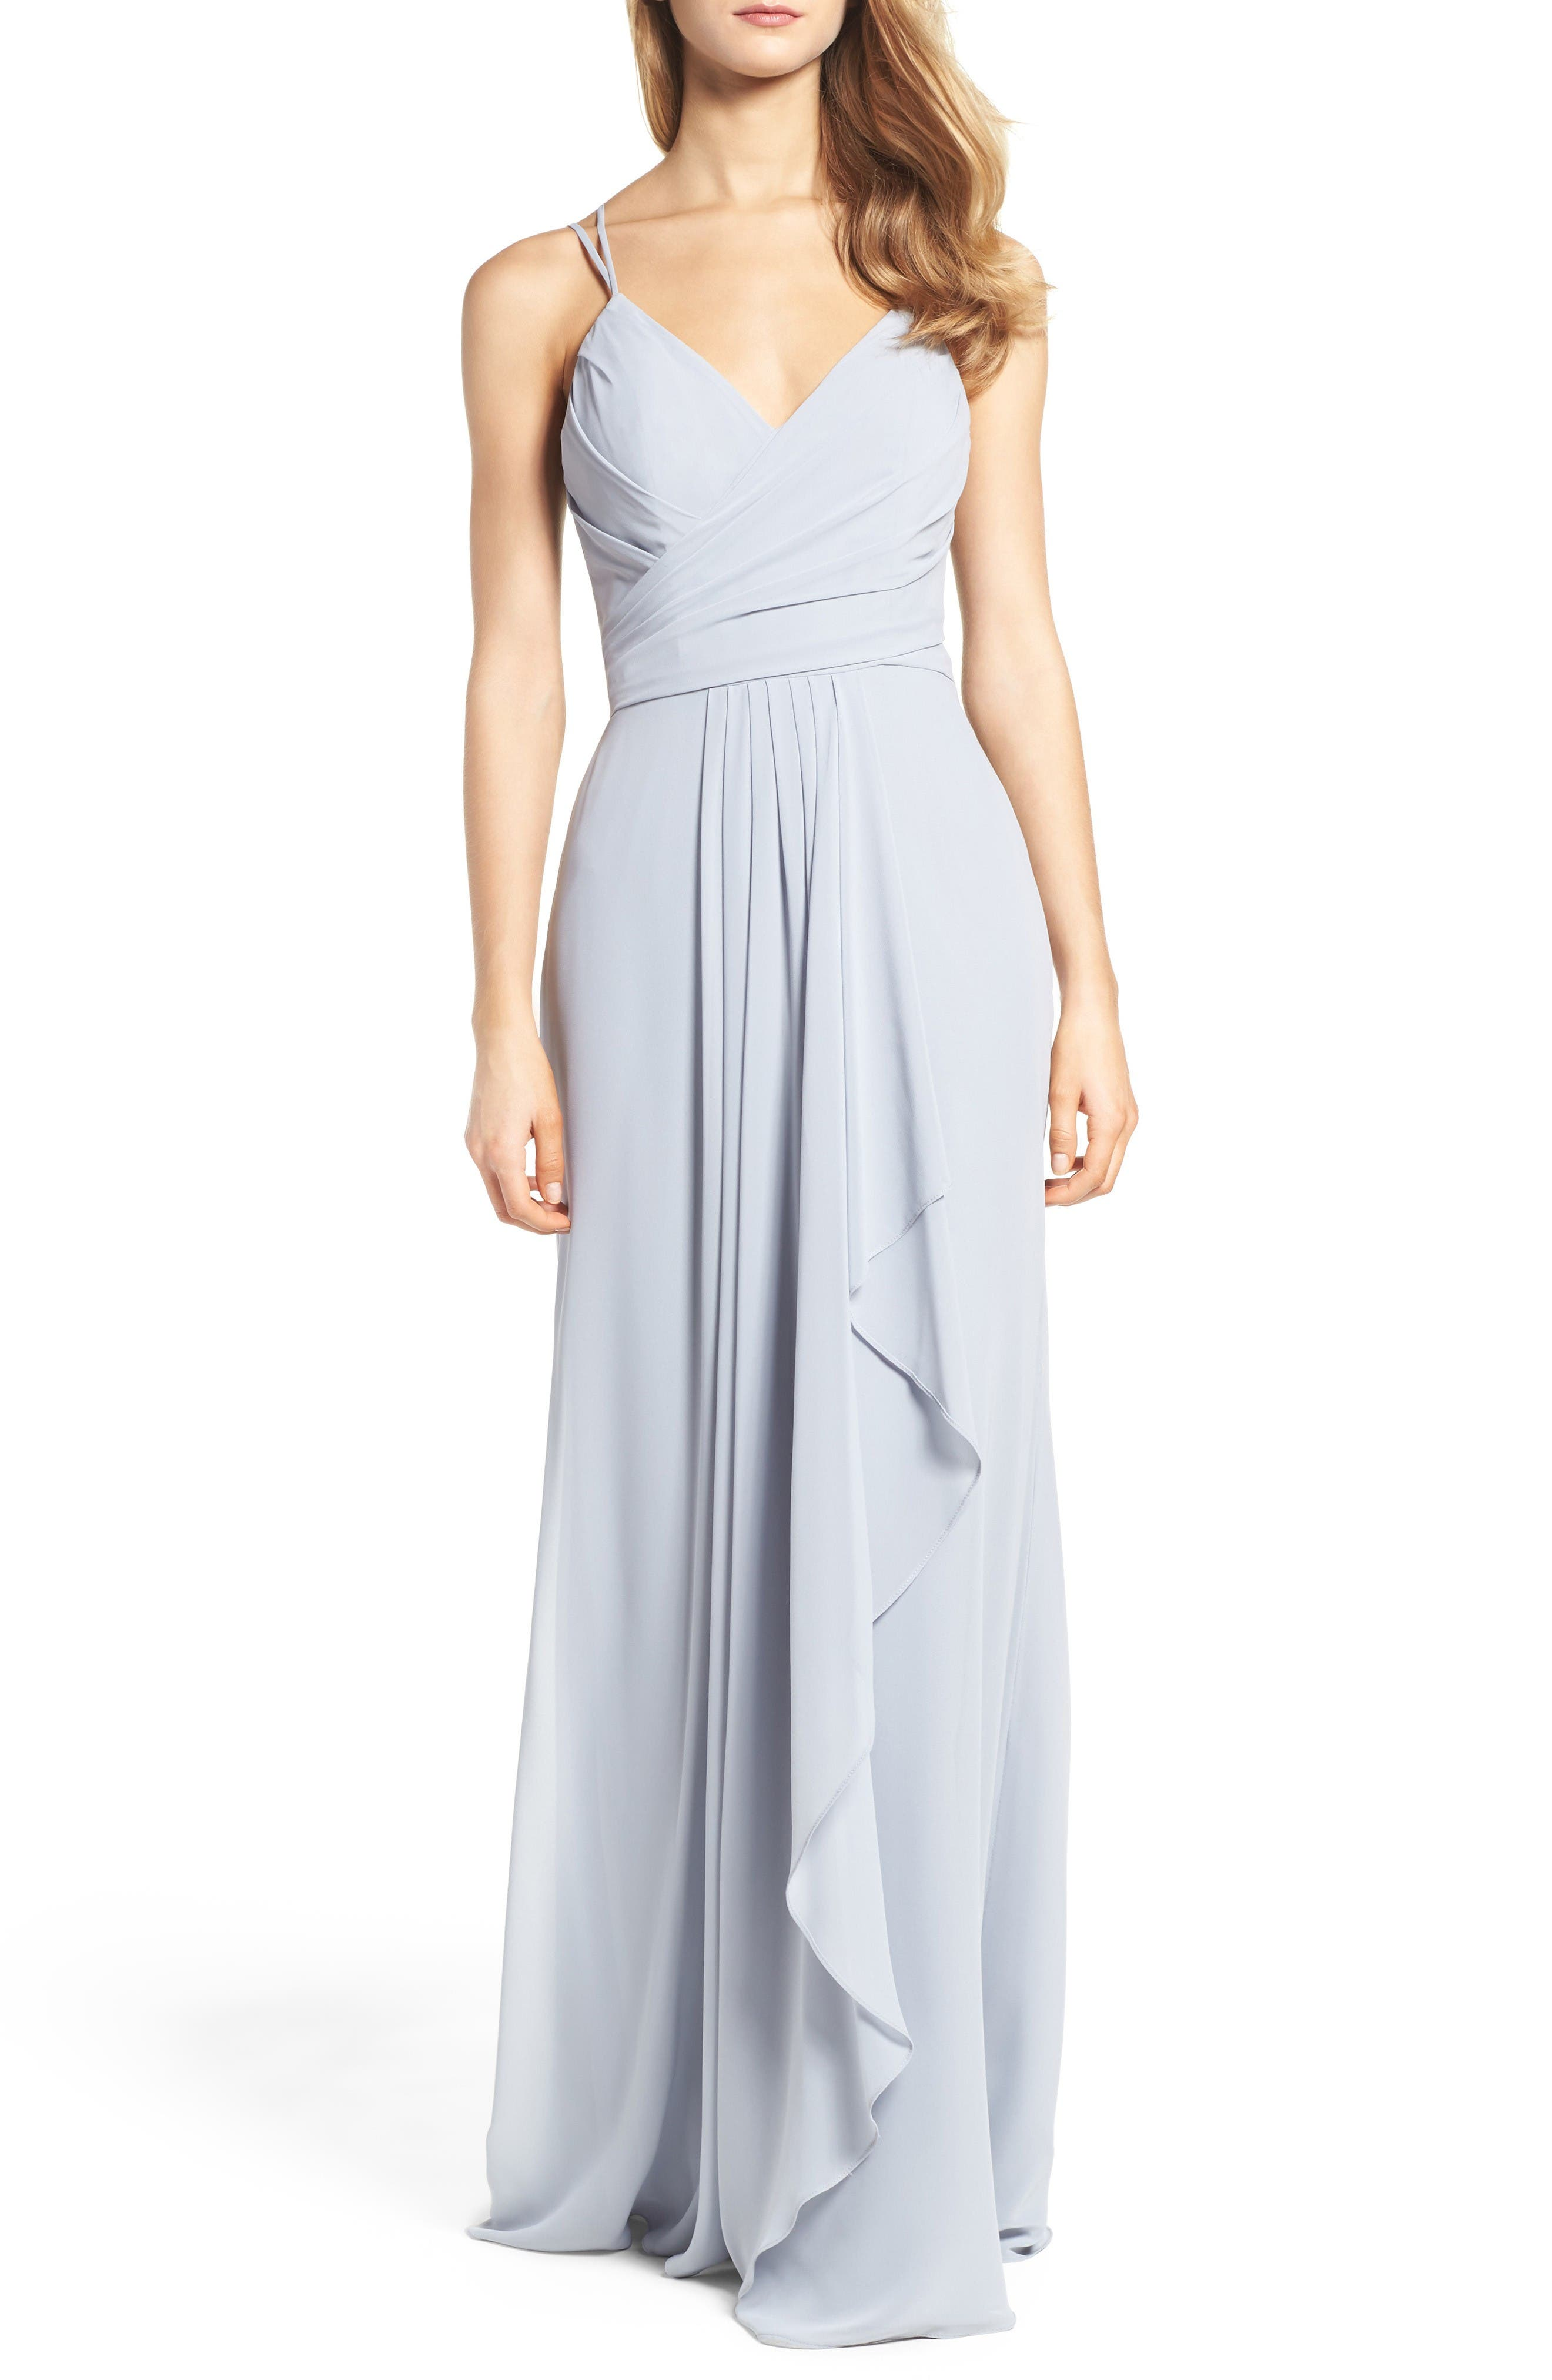 Hayley Paige Occasions Chiffon Gown